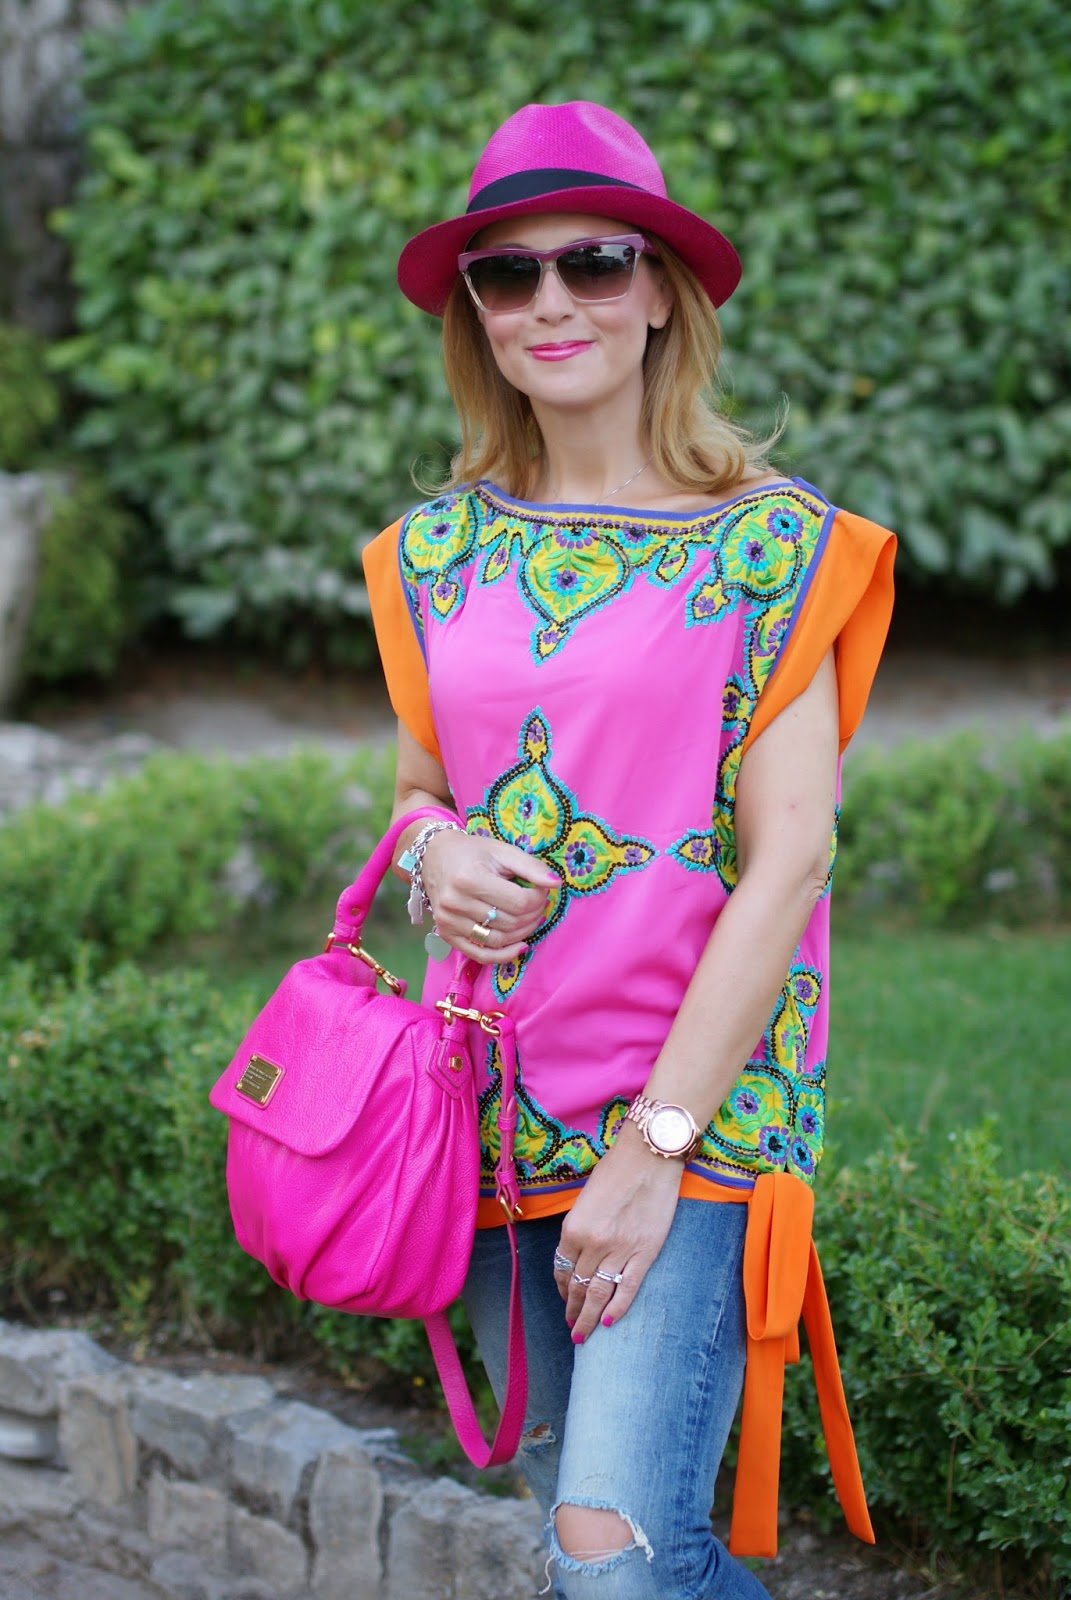 Preeti S Kapoor top, Little Ukita bag, Ecua-Andino hat, Fashion and Cookies, fashion blogger